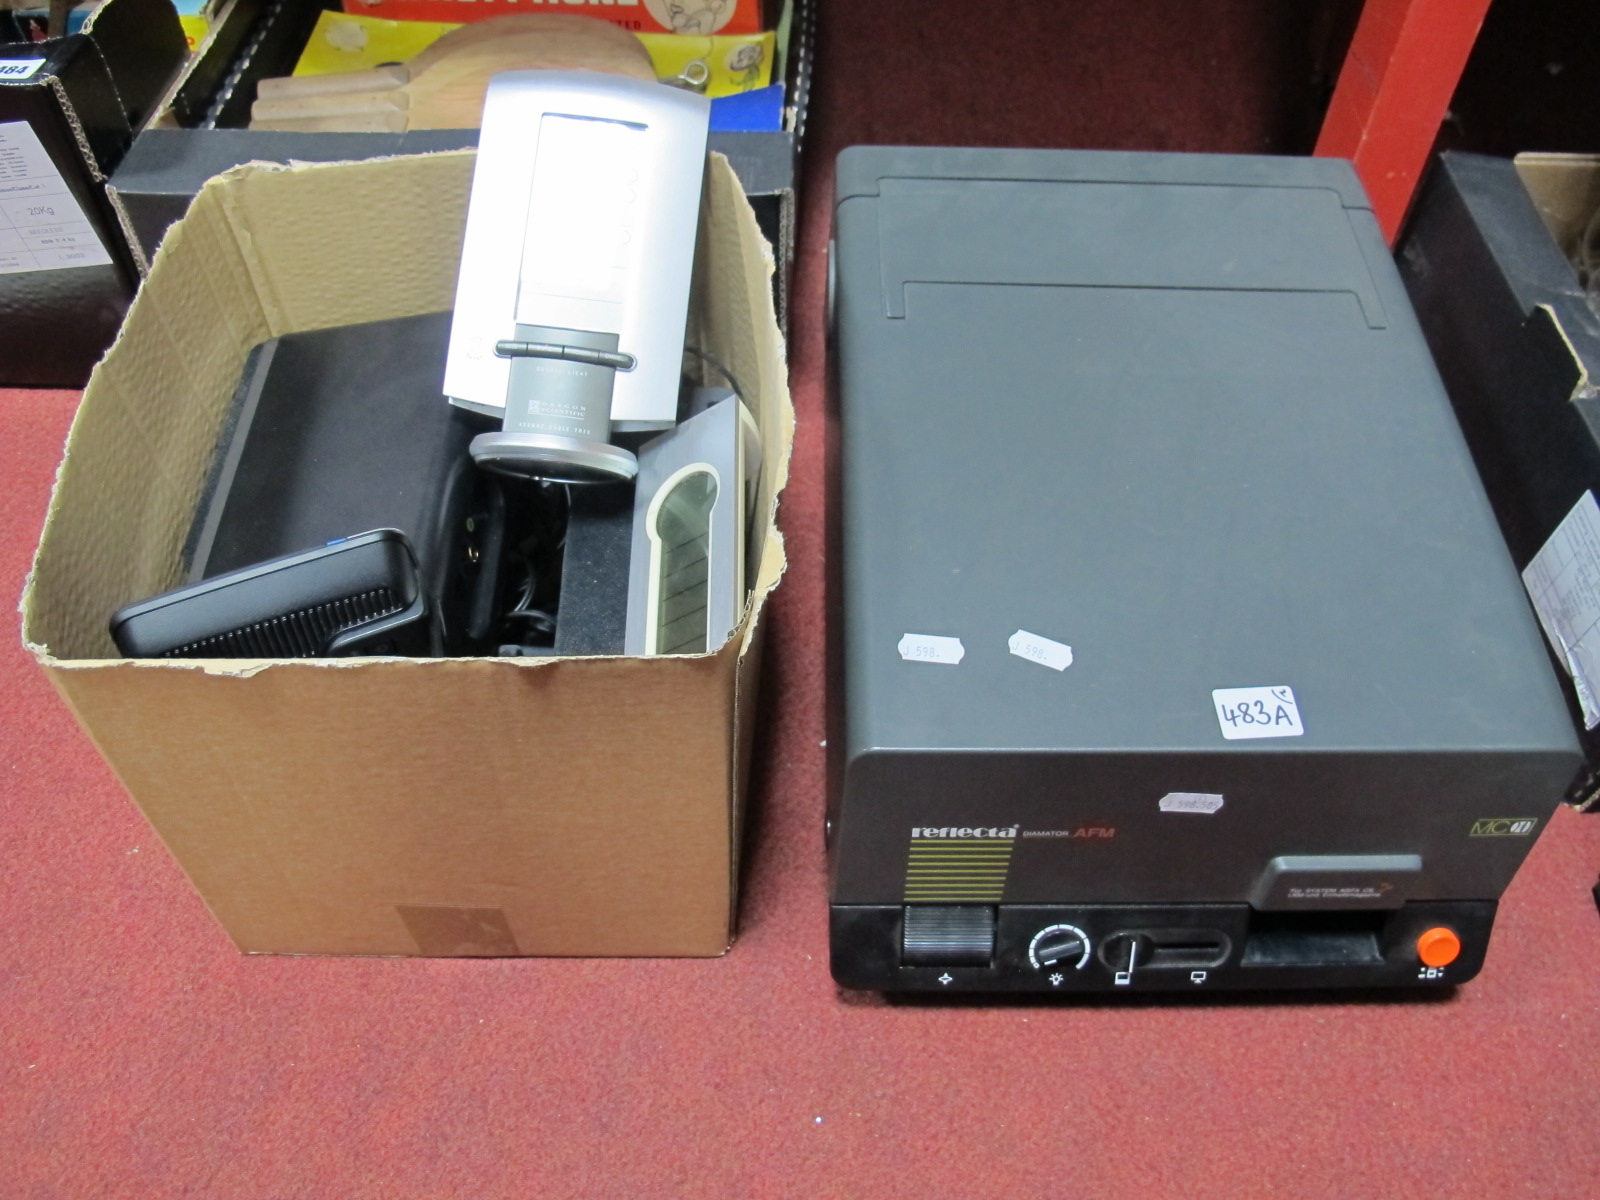 Lot 483A - Reflector Diamator AFM, 'Creative' Speakers, wireless weather station, etc. (untested - for parts